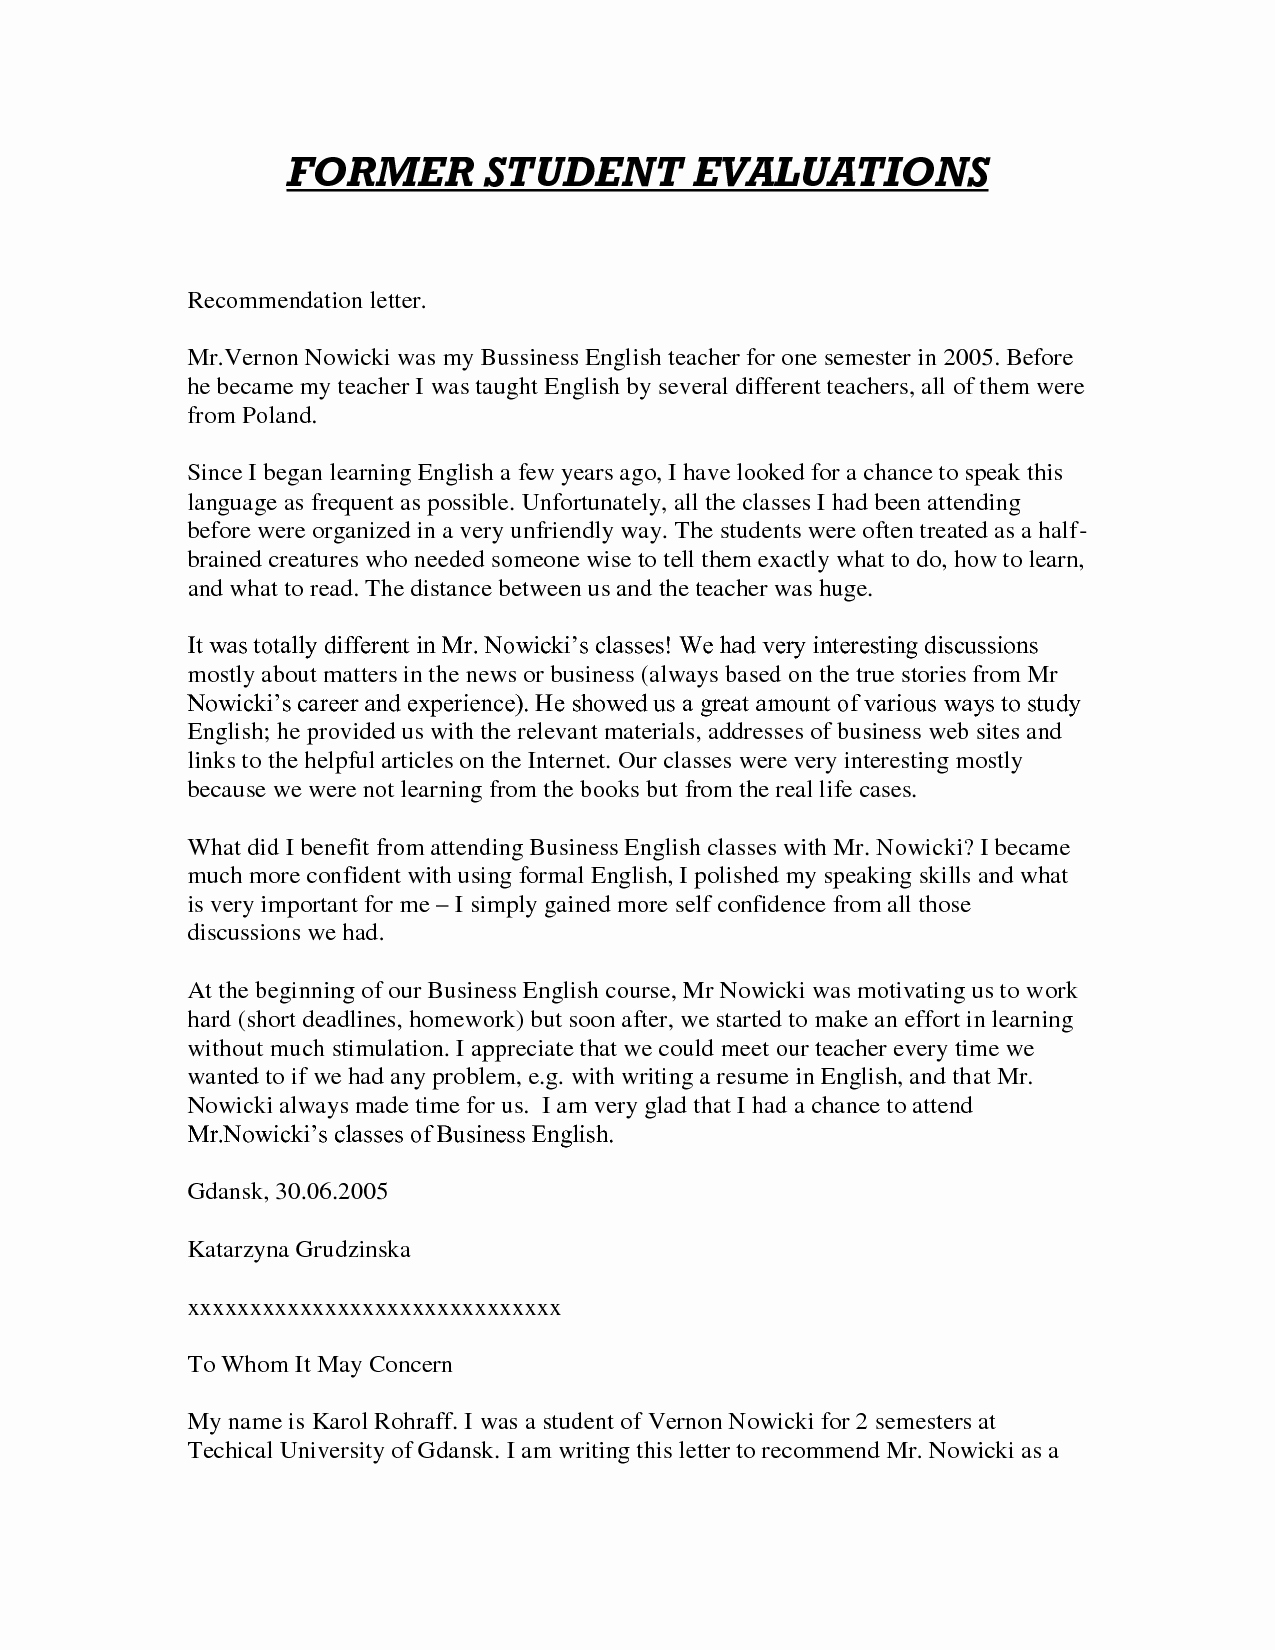 Reference Letter Sample for Teacher Beautiful Sample Letter Of Re Mendation for Teacher